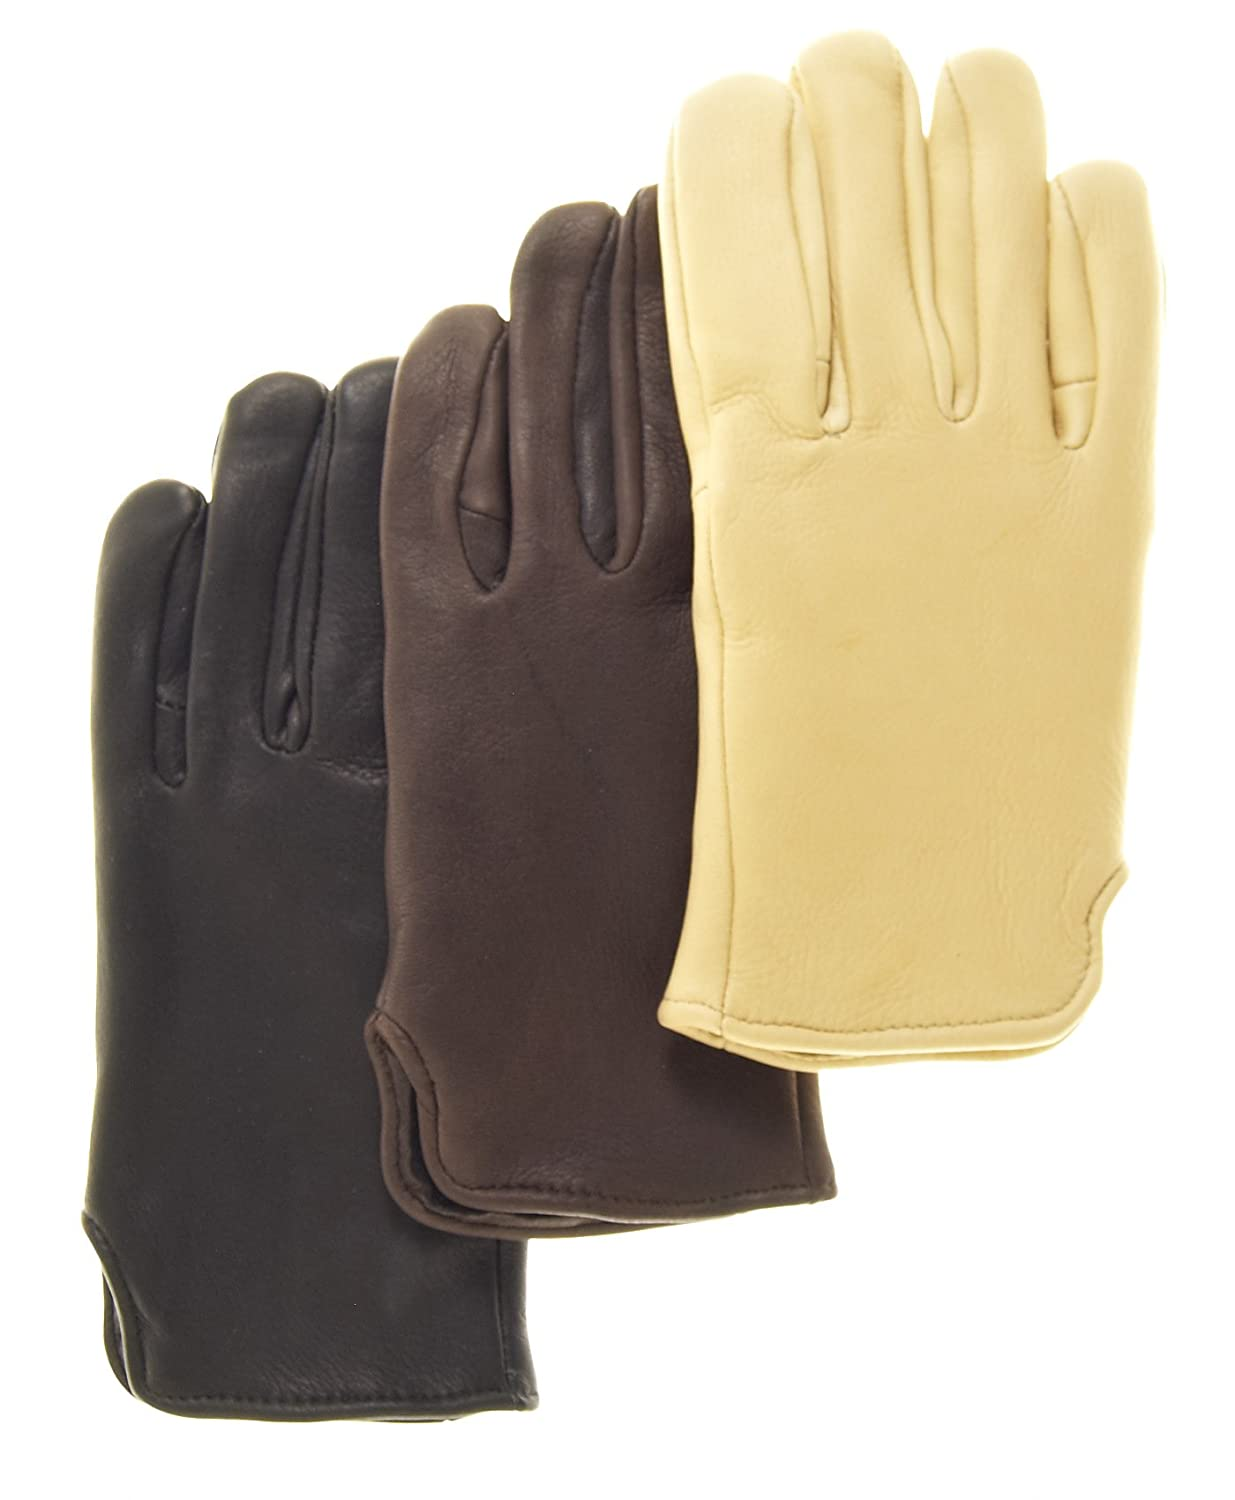 Mens deerskin gloves - Geier Glove Men S Fleece Lined Deerskin Gloves Size 7 Color Black At Amazon Men S Clothing Store Cold Weather Gloves